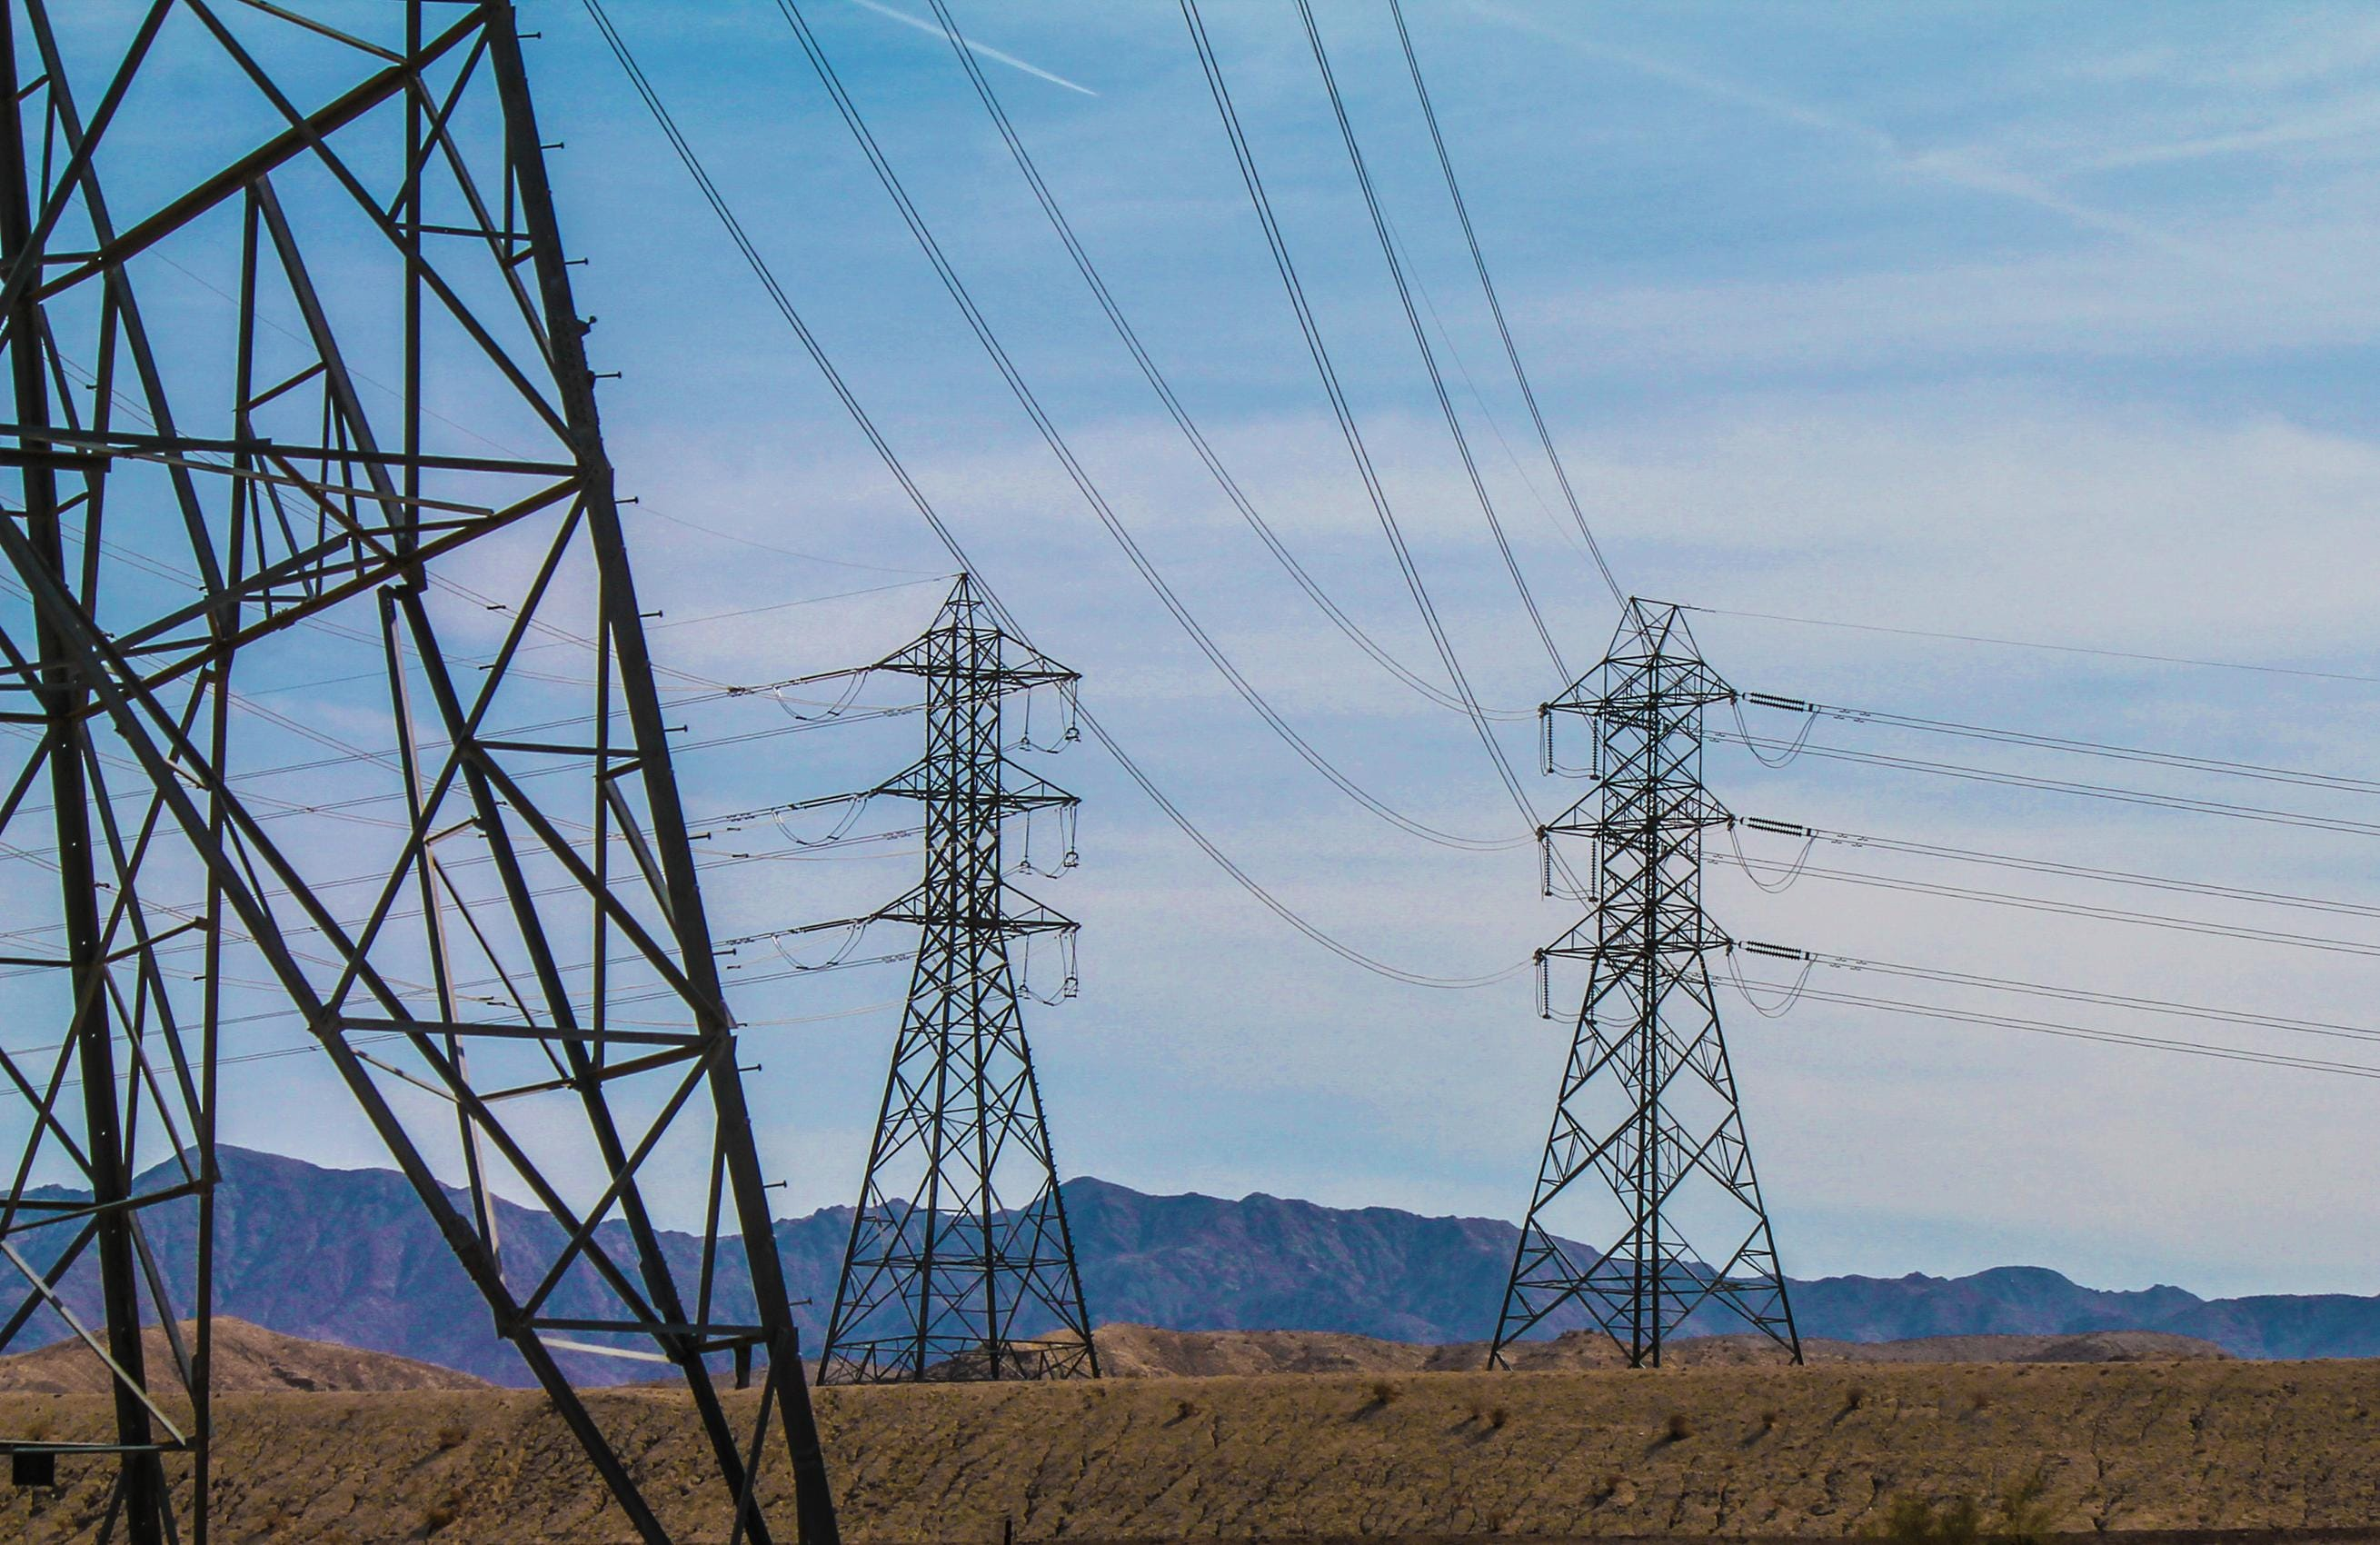 The Imperial Irrigation District's Path 42 power lines run from a substation in the eastern Coachella Valley to a Southern California Edison substation in the west valley.